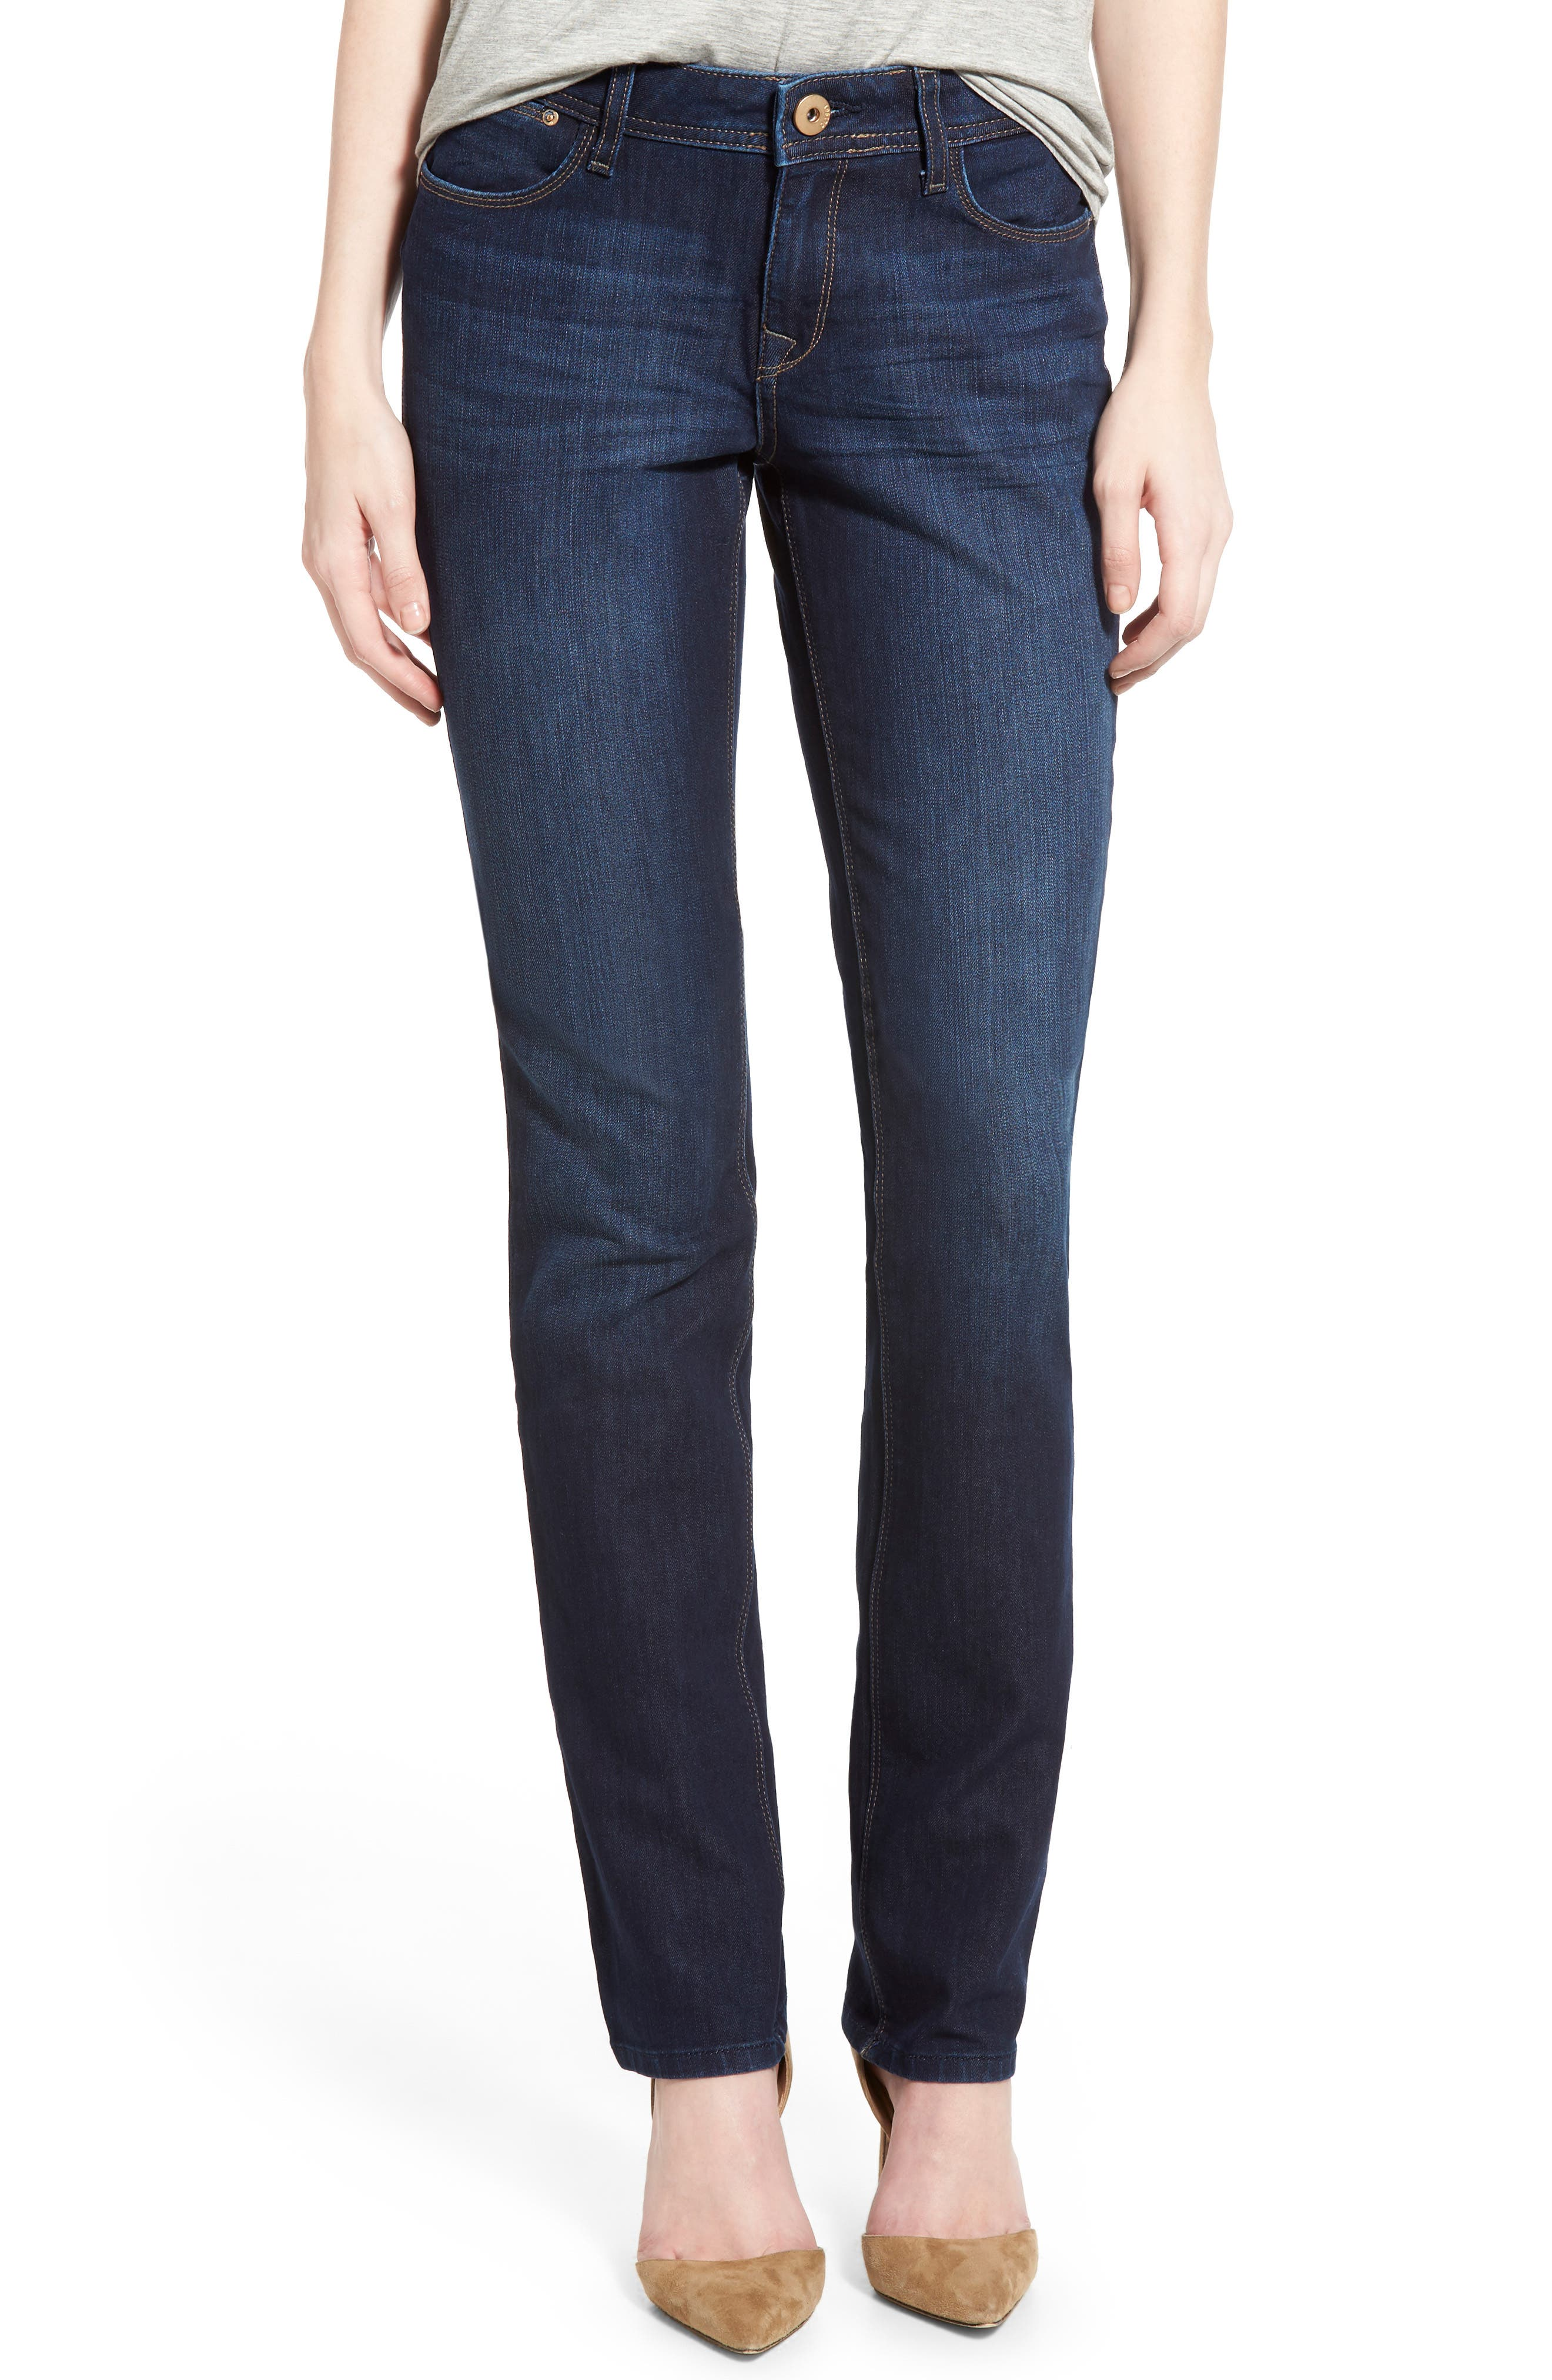 'Coco' Curvy Straight Jeans,                         Main,                         color, SOLO